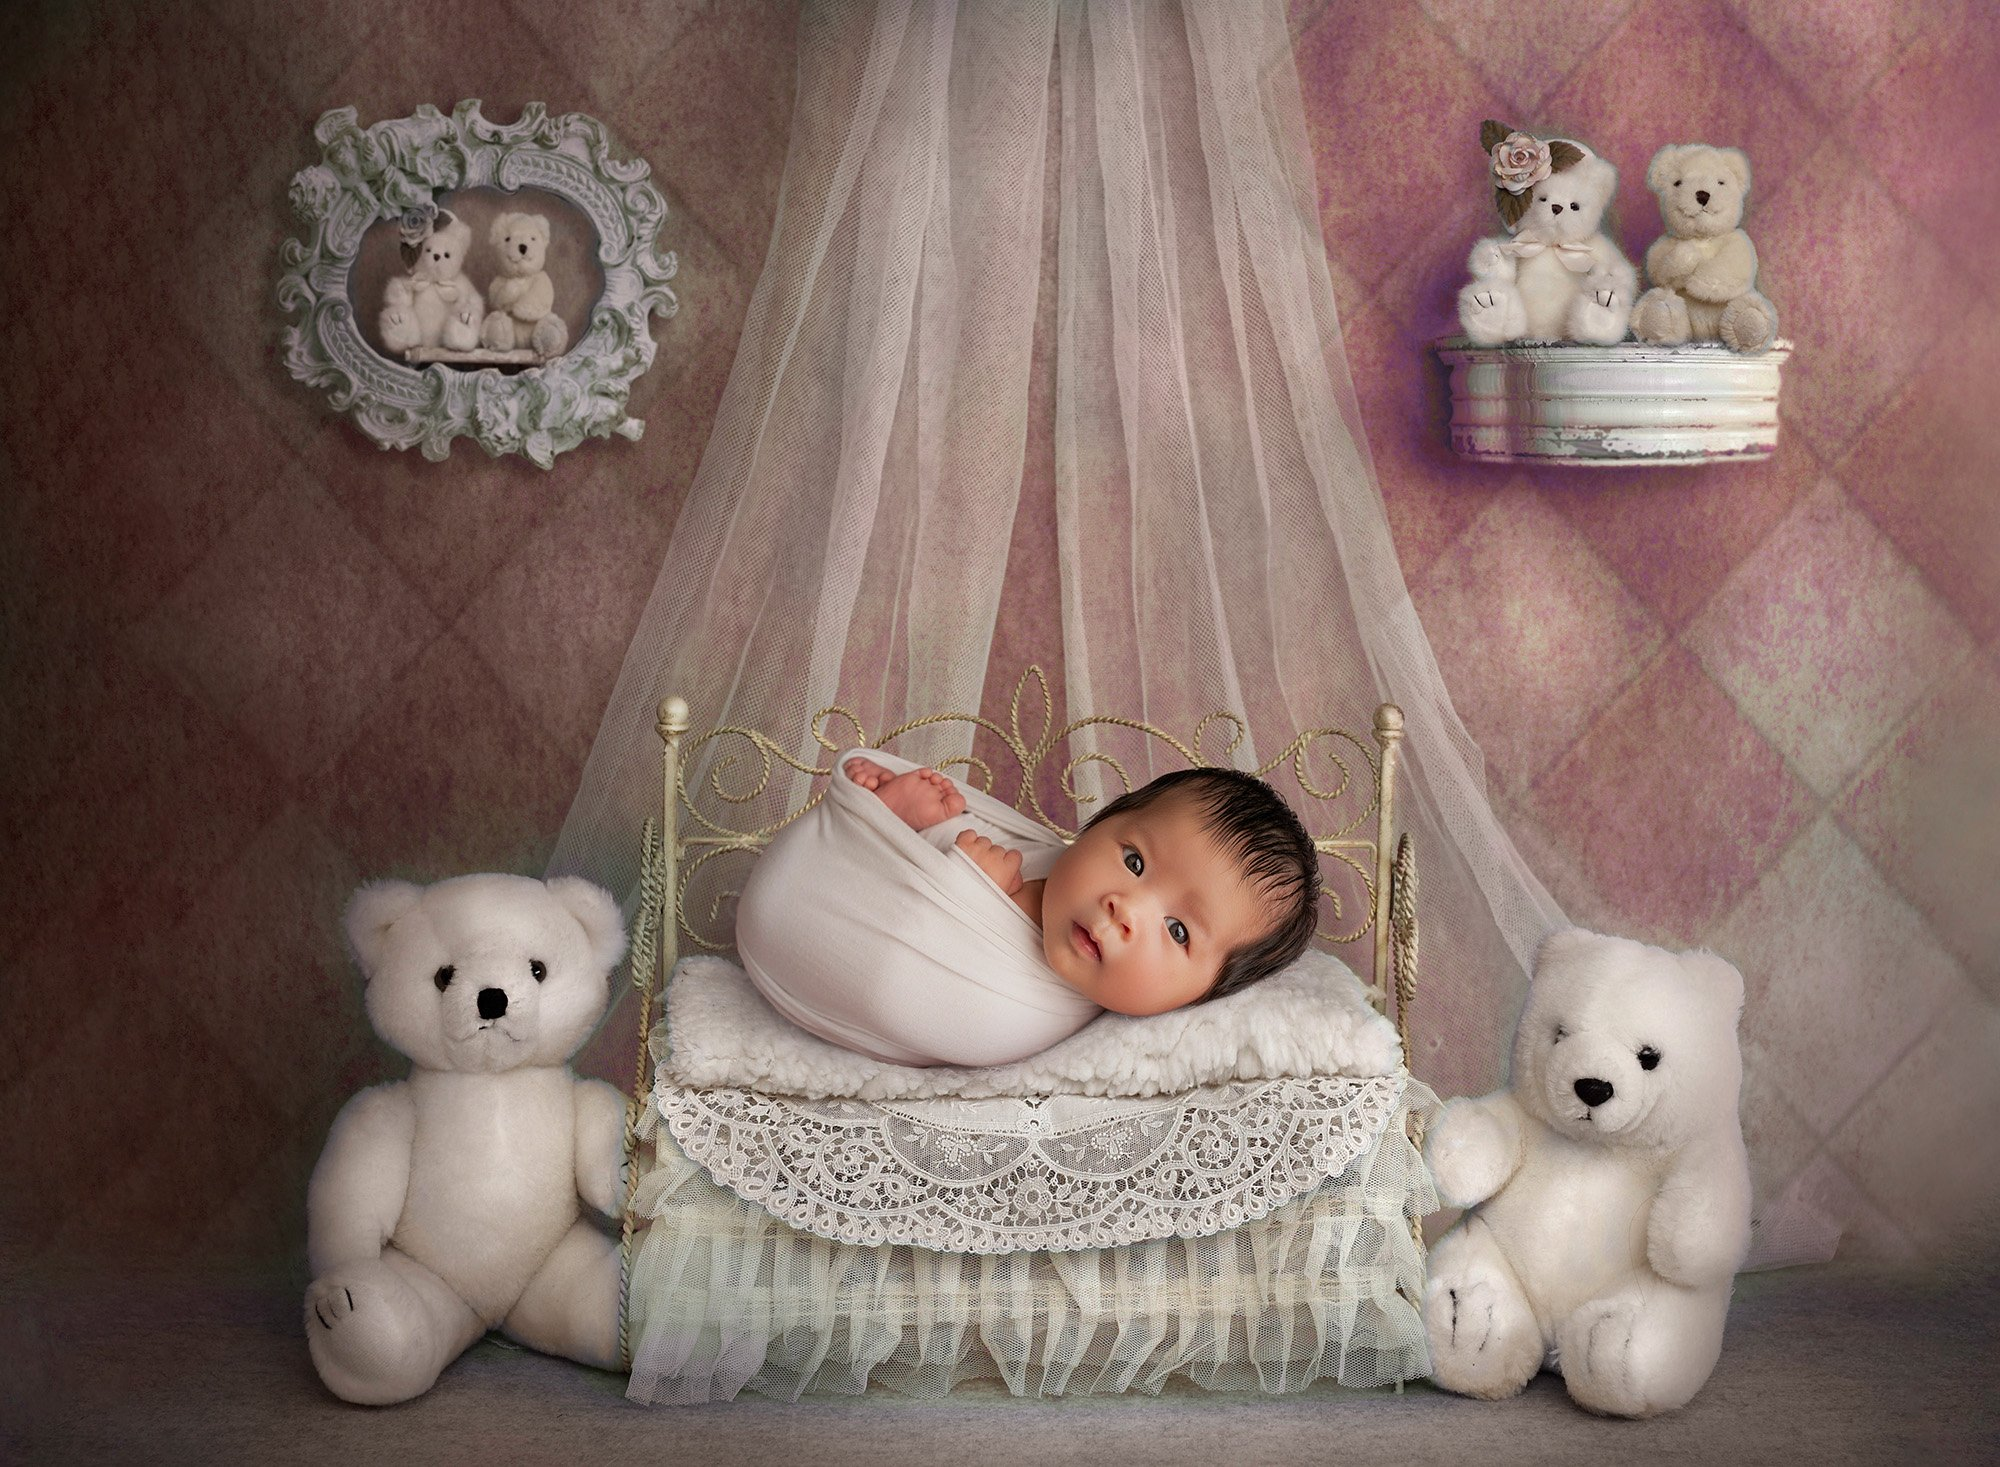 awake newborn baby girl laying in miniature princess bed surrounded by stuffed animal bears on a pink diamond background